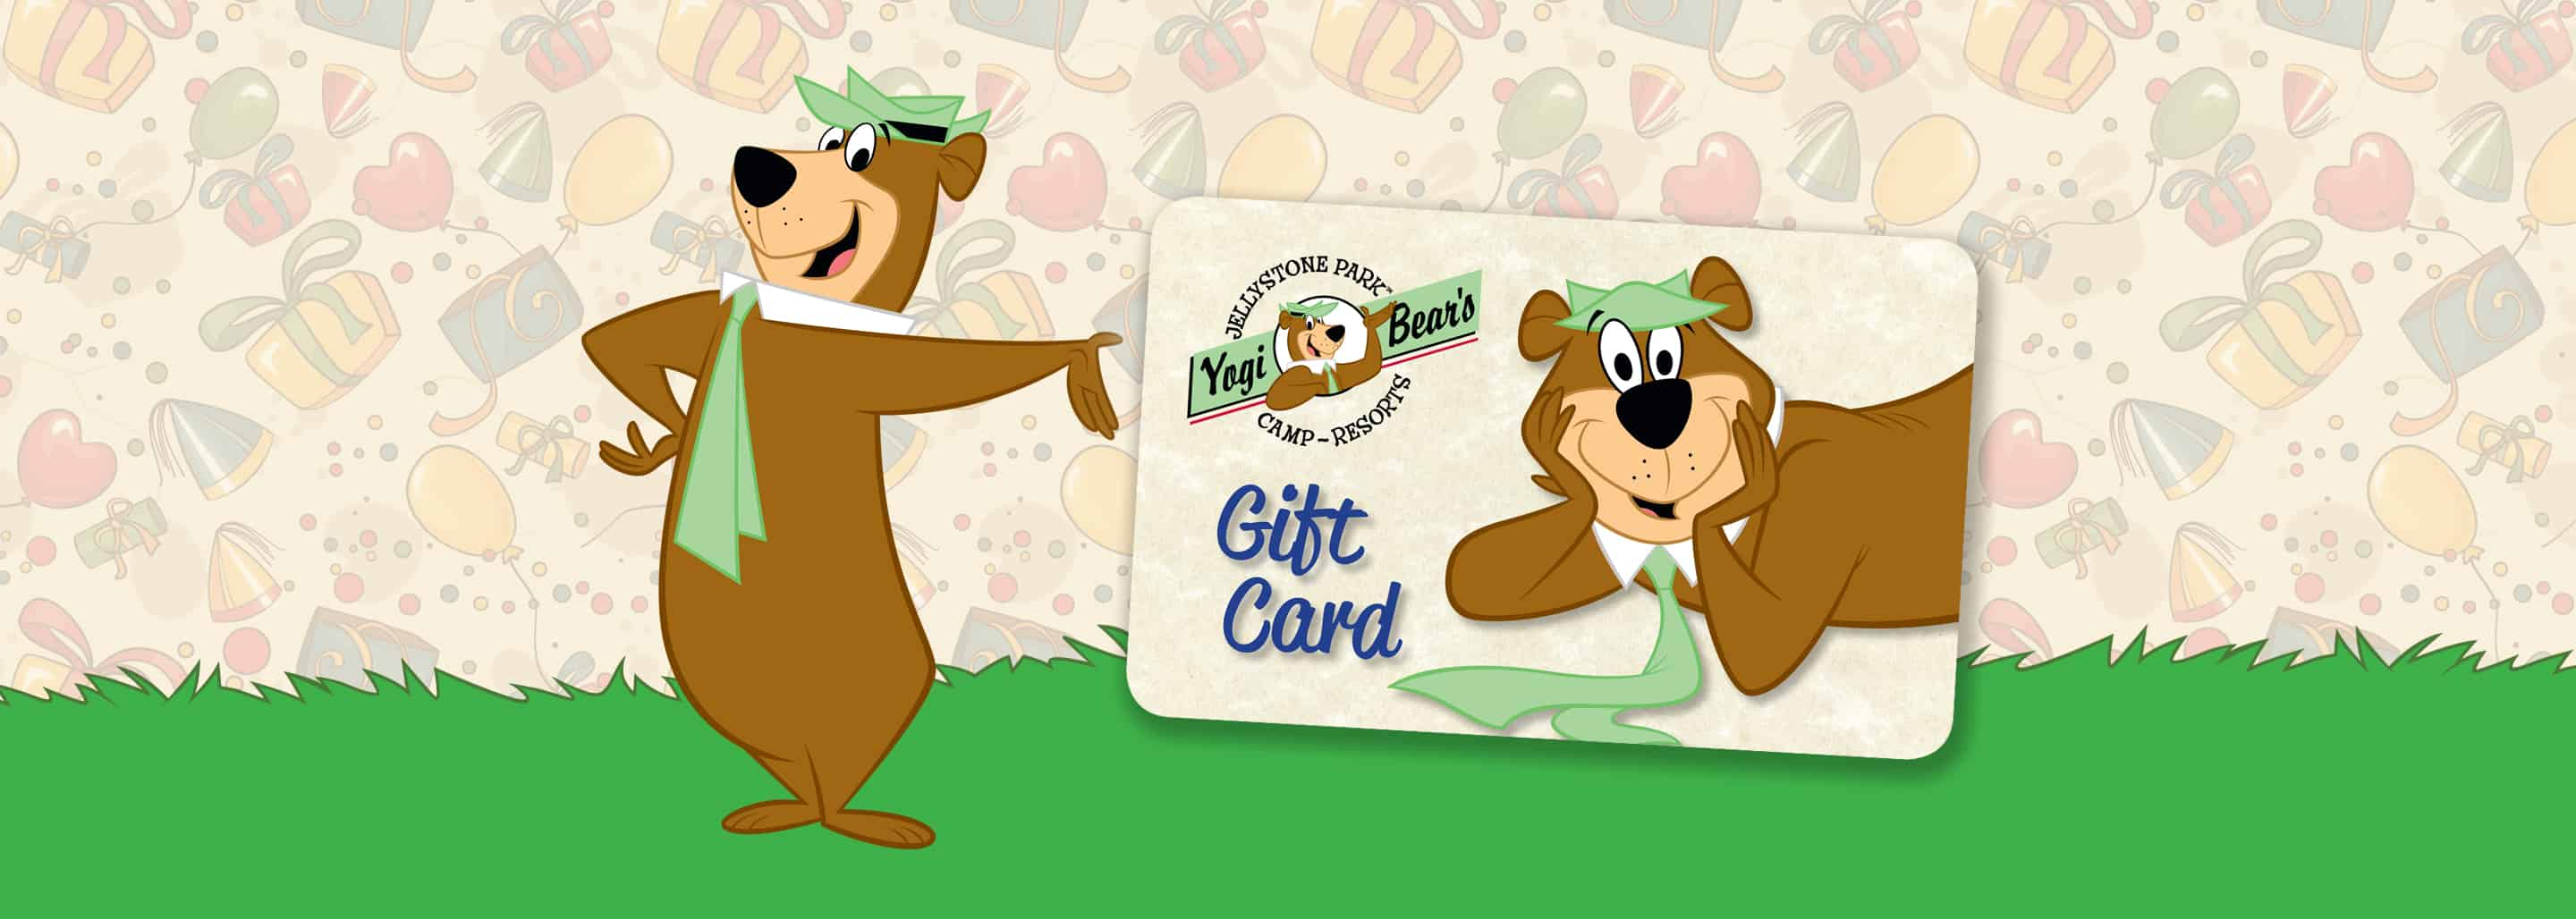 lake monroe jellystone park gift card at RV Park Bloomington IN